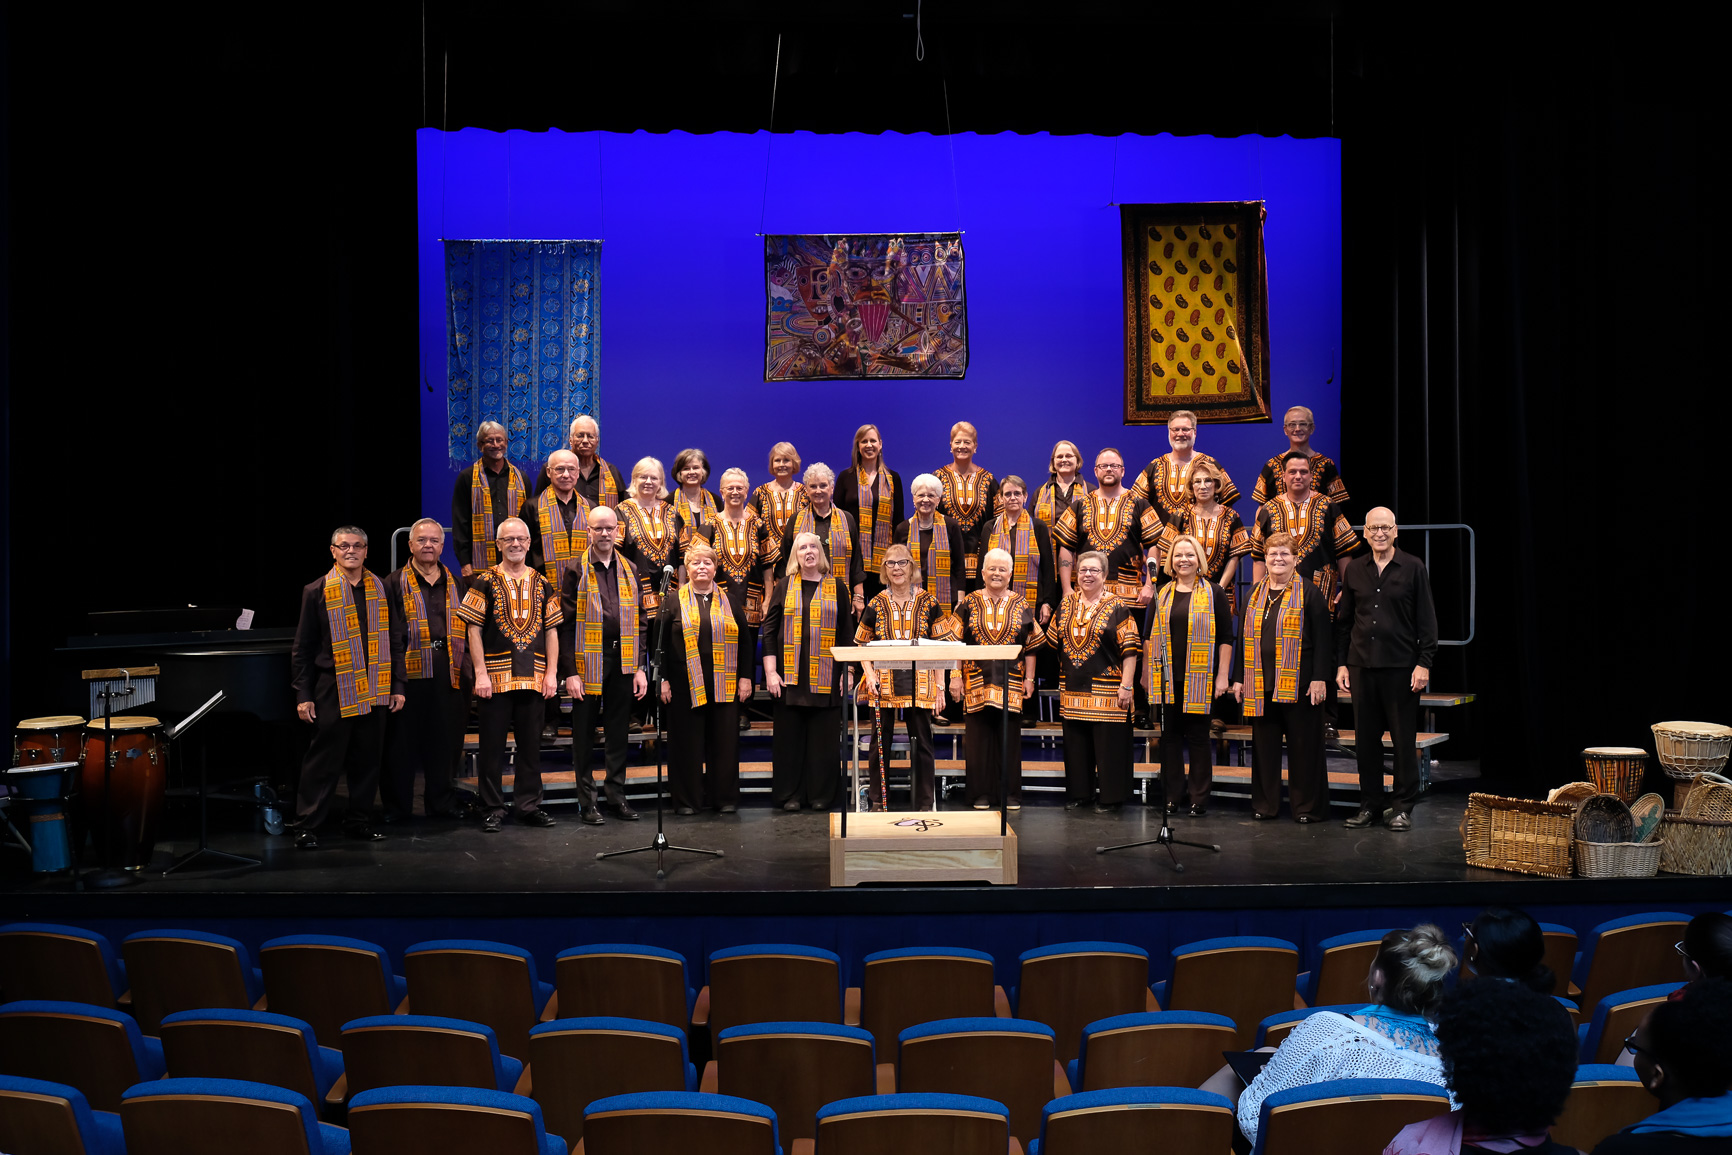 Diversity: The Voices of Sarasota - All About Africa - Spring, 2017